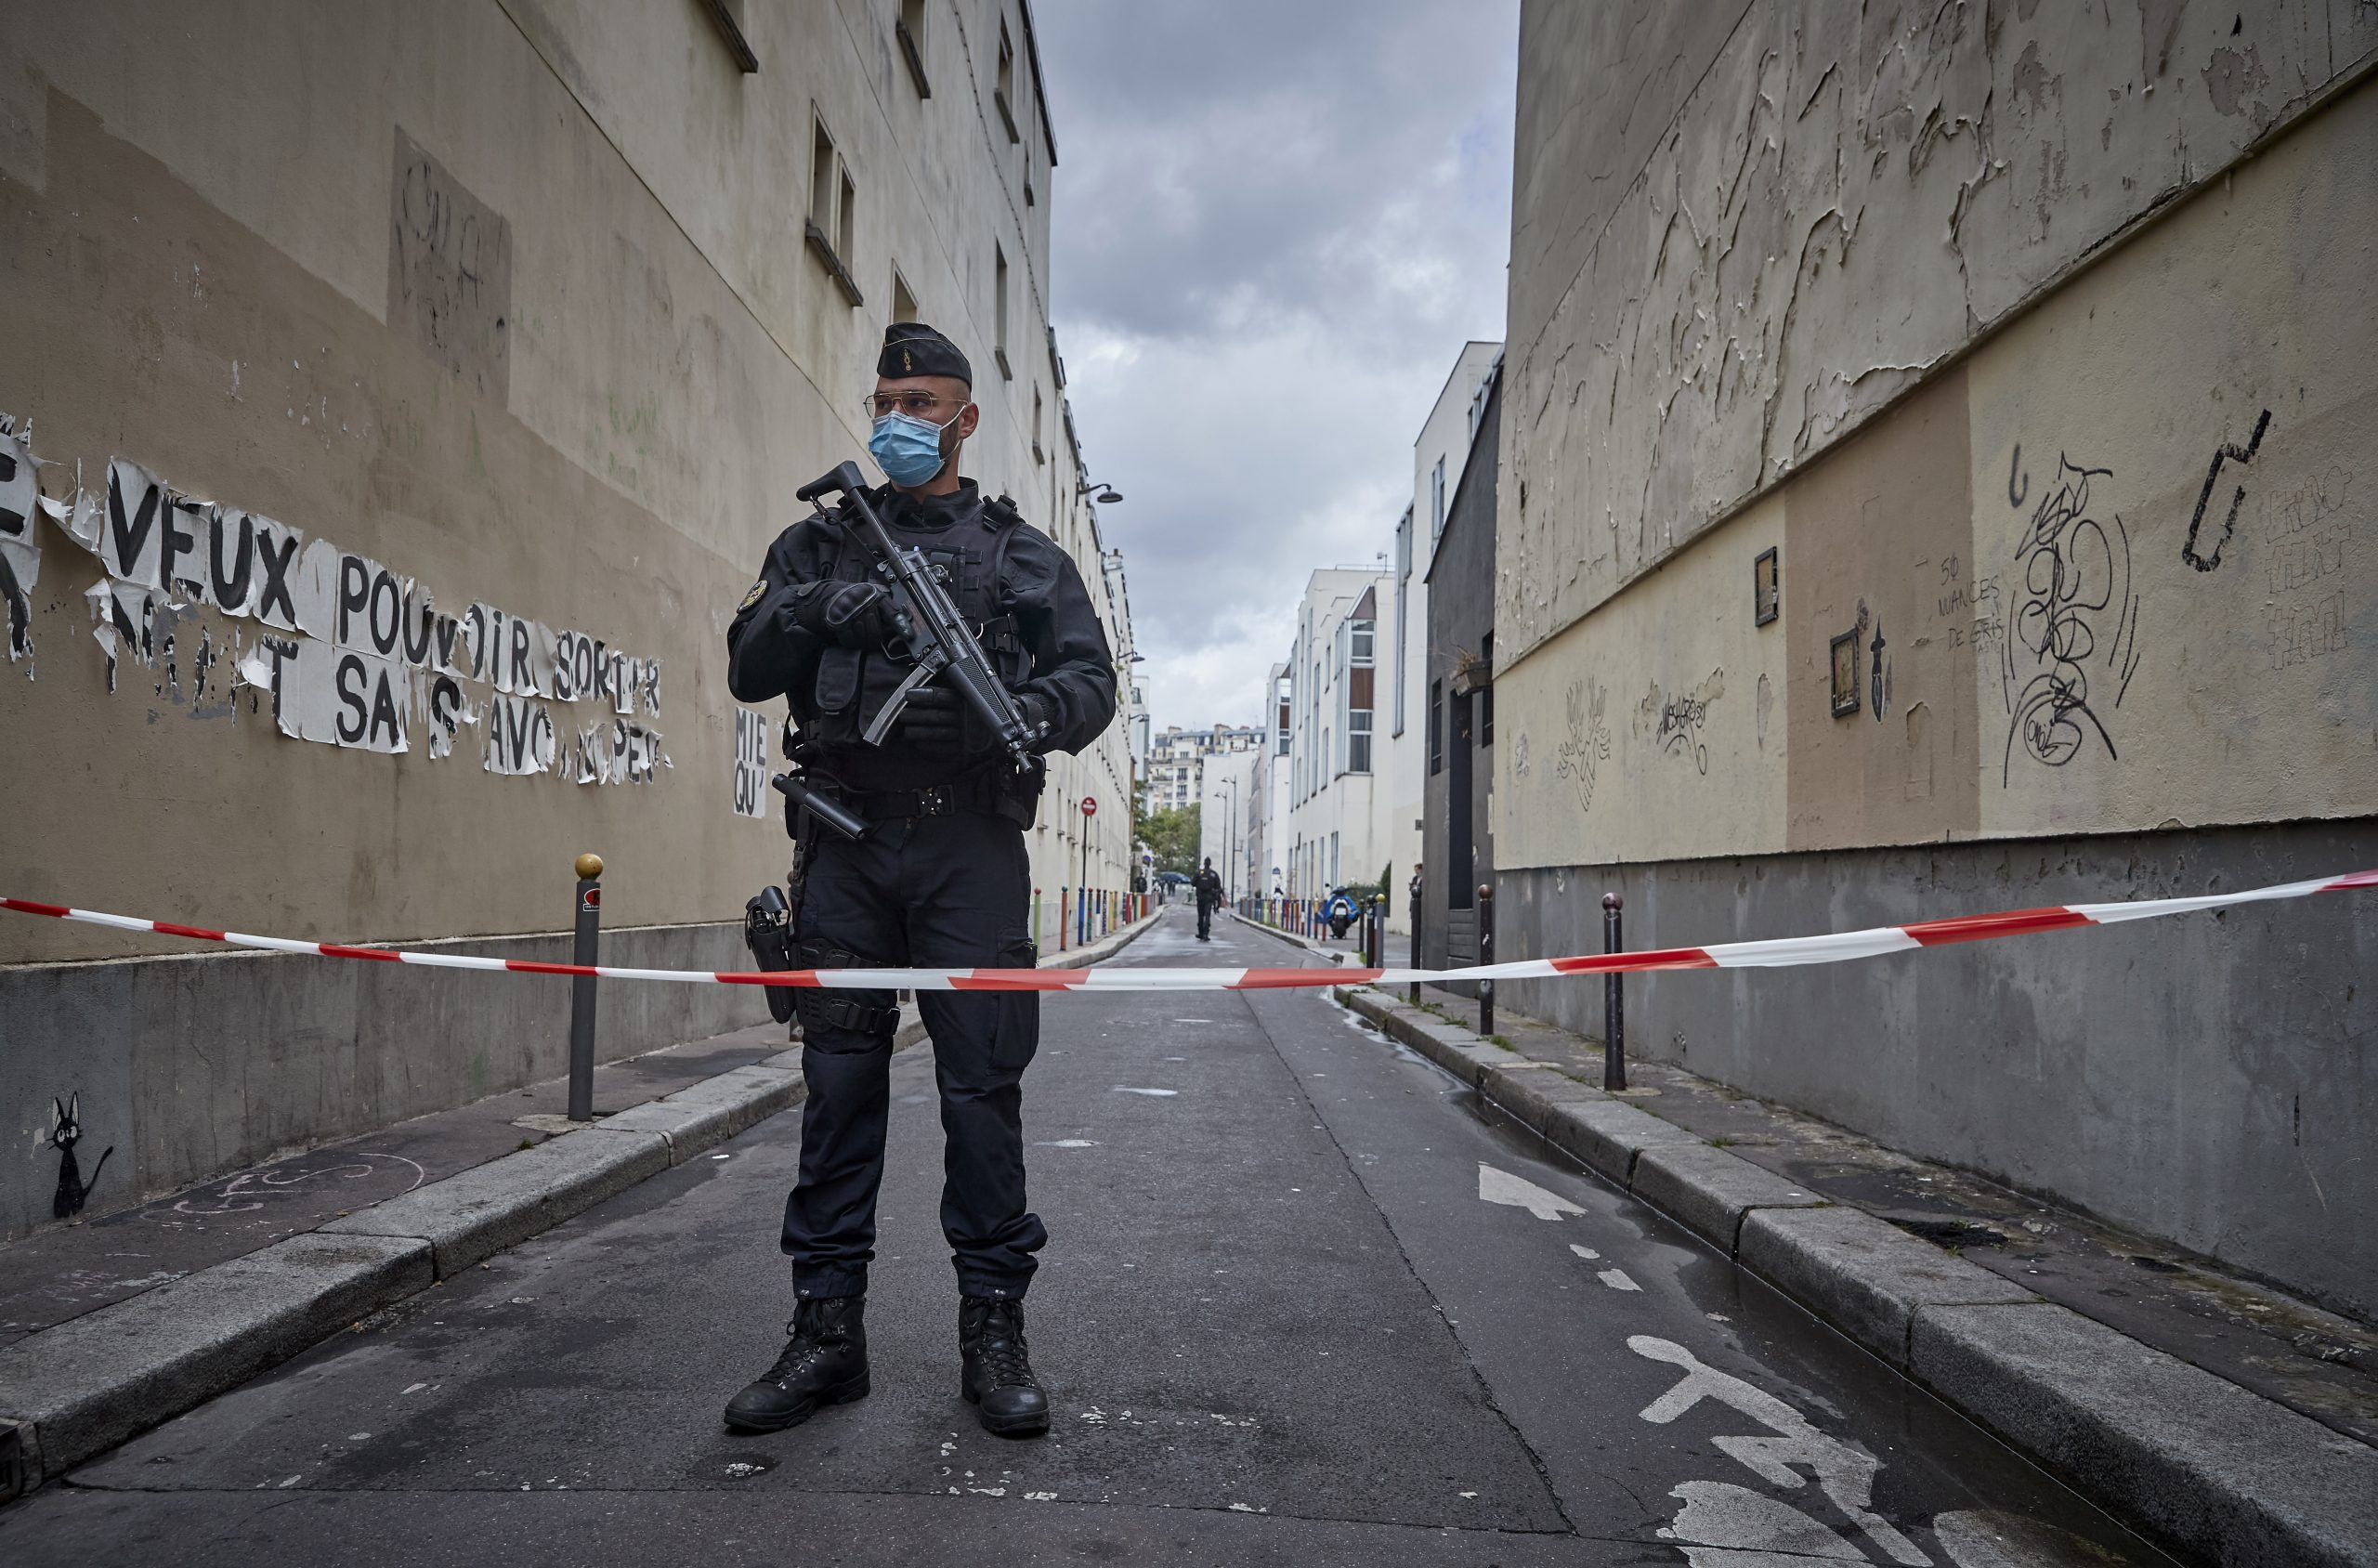 Armed police secure the area of around the former Charlie Hebdo headquarters, and scene of a previous terrorist attack in 2015, after two people were stabbed on September 25, 2020 in Paris, France.  (Photo by Kiran Ridley/Getty Images)